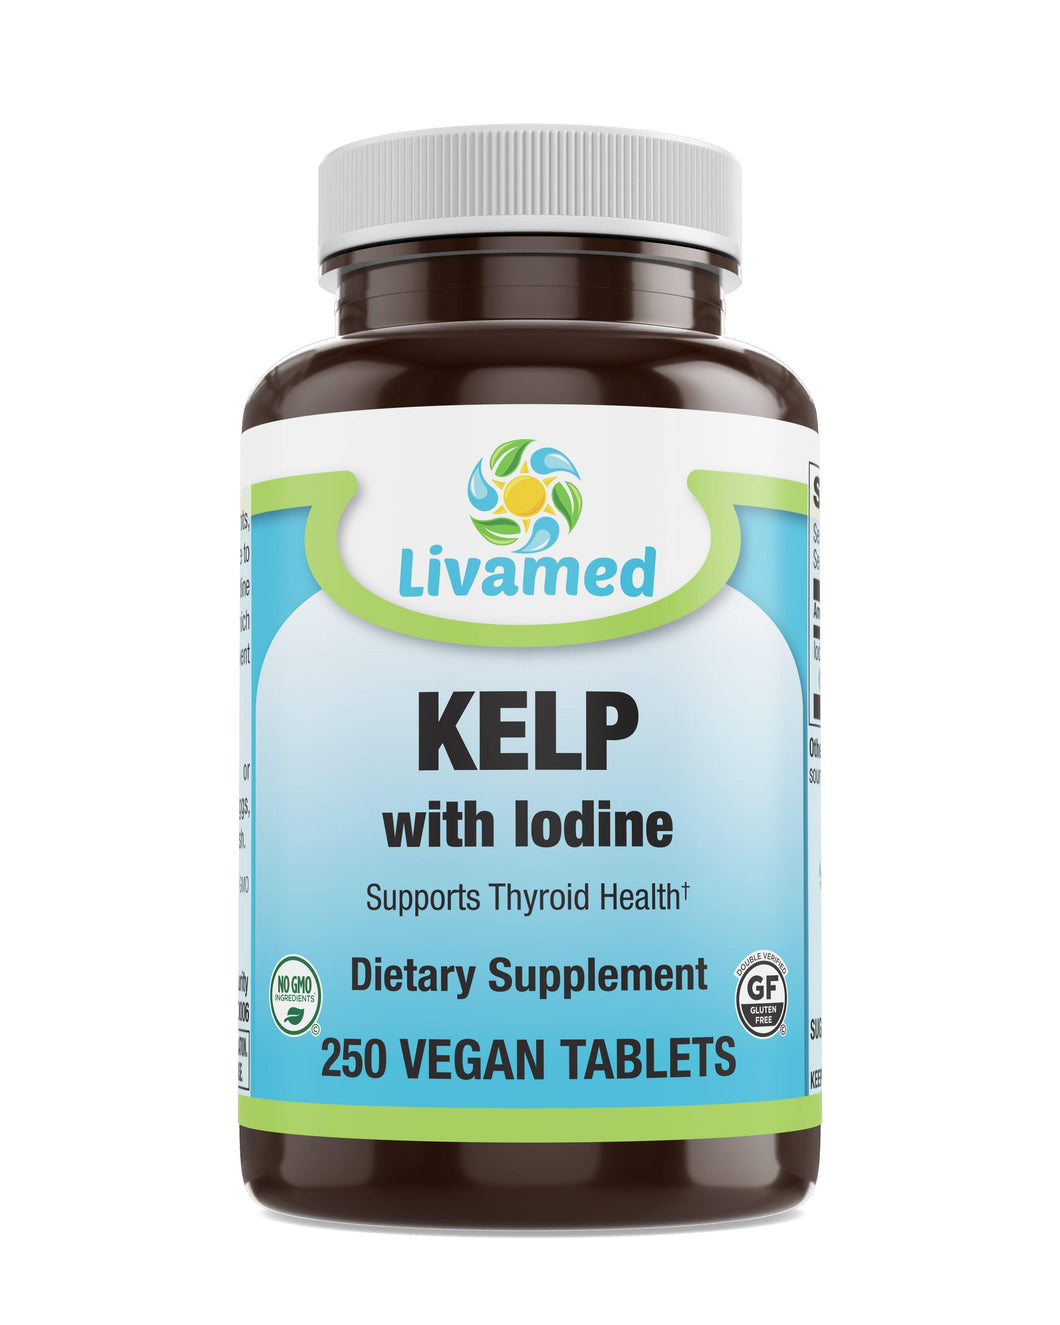 Livamed - Kelp with Iodine Veg Tabs 250 Count